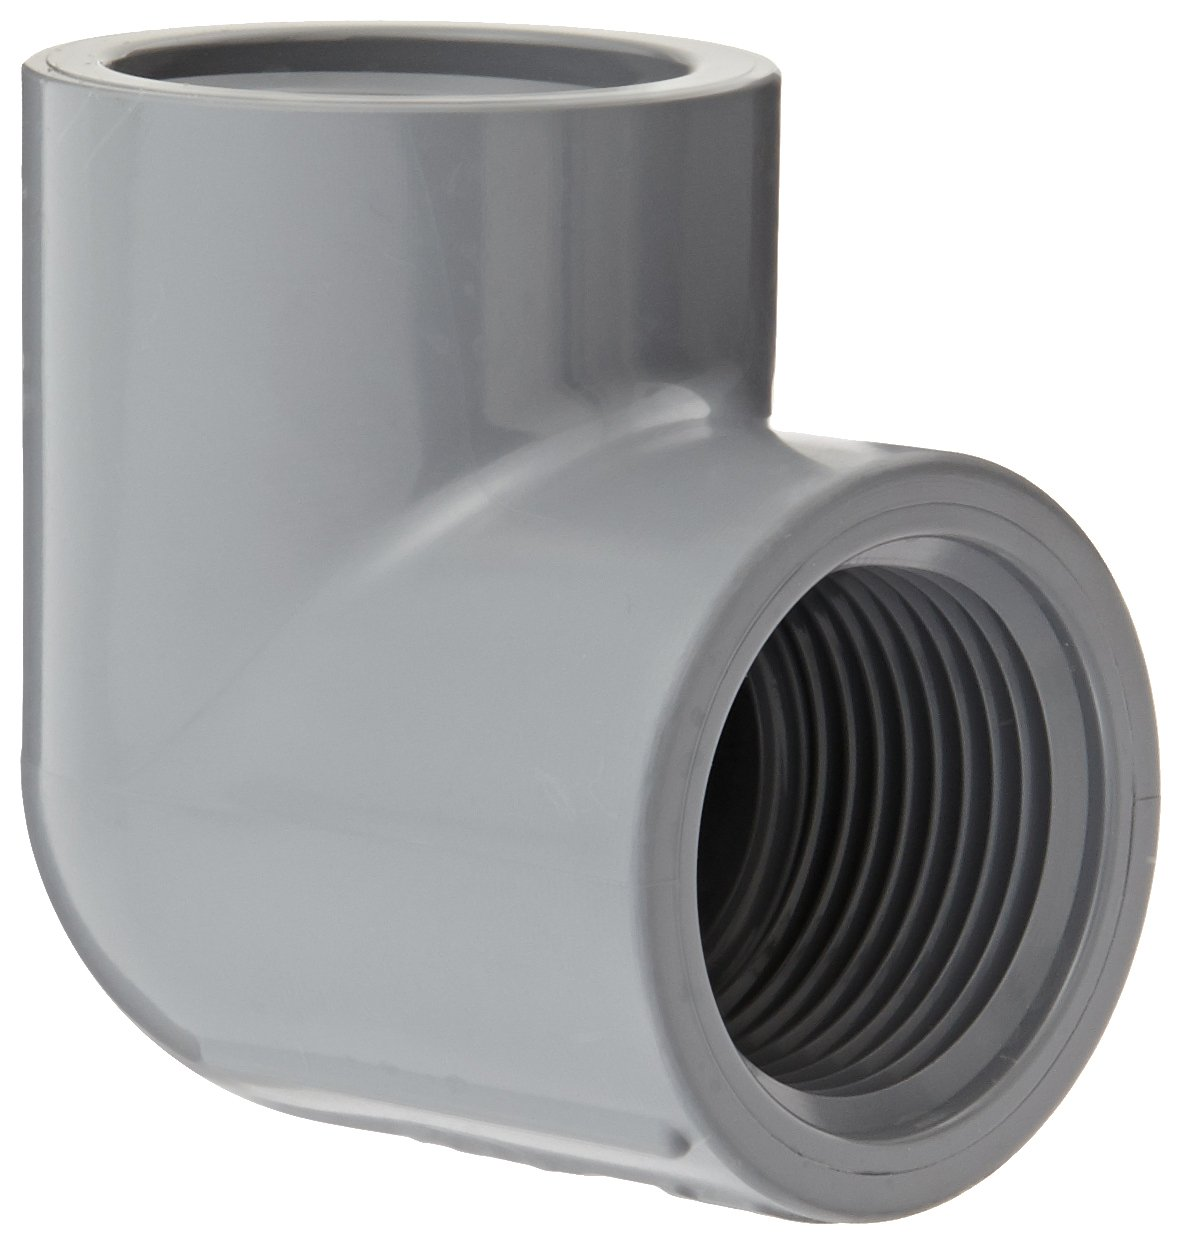 Spears 808-C Series CPVC Pipe Fitting 90 Degree Elbow Schedule 80 1//2 NPT Female